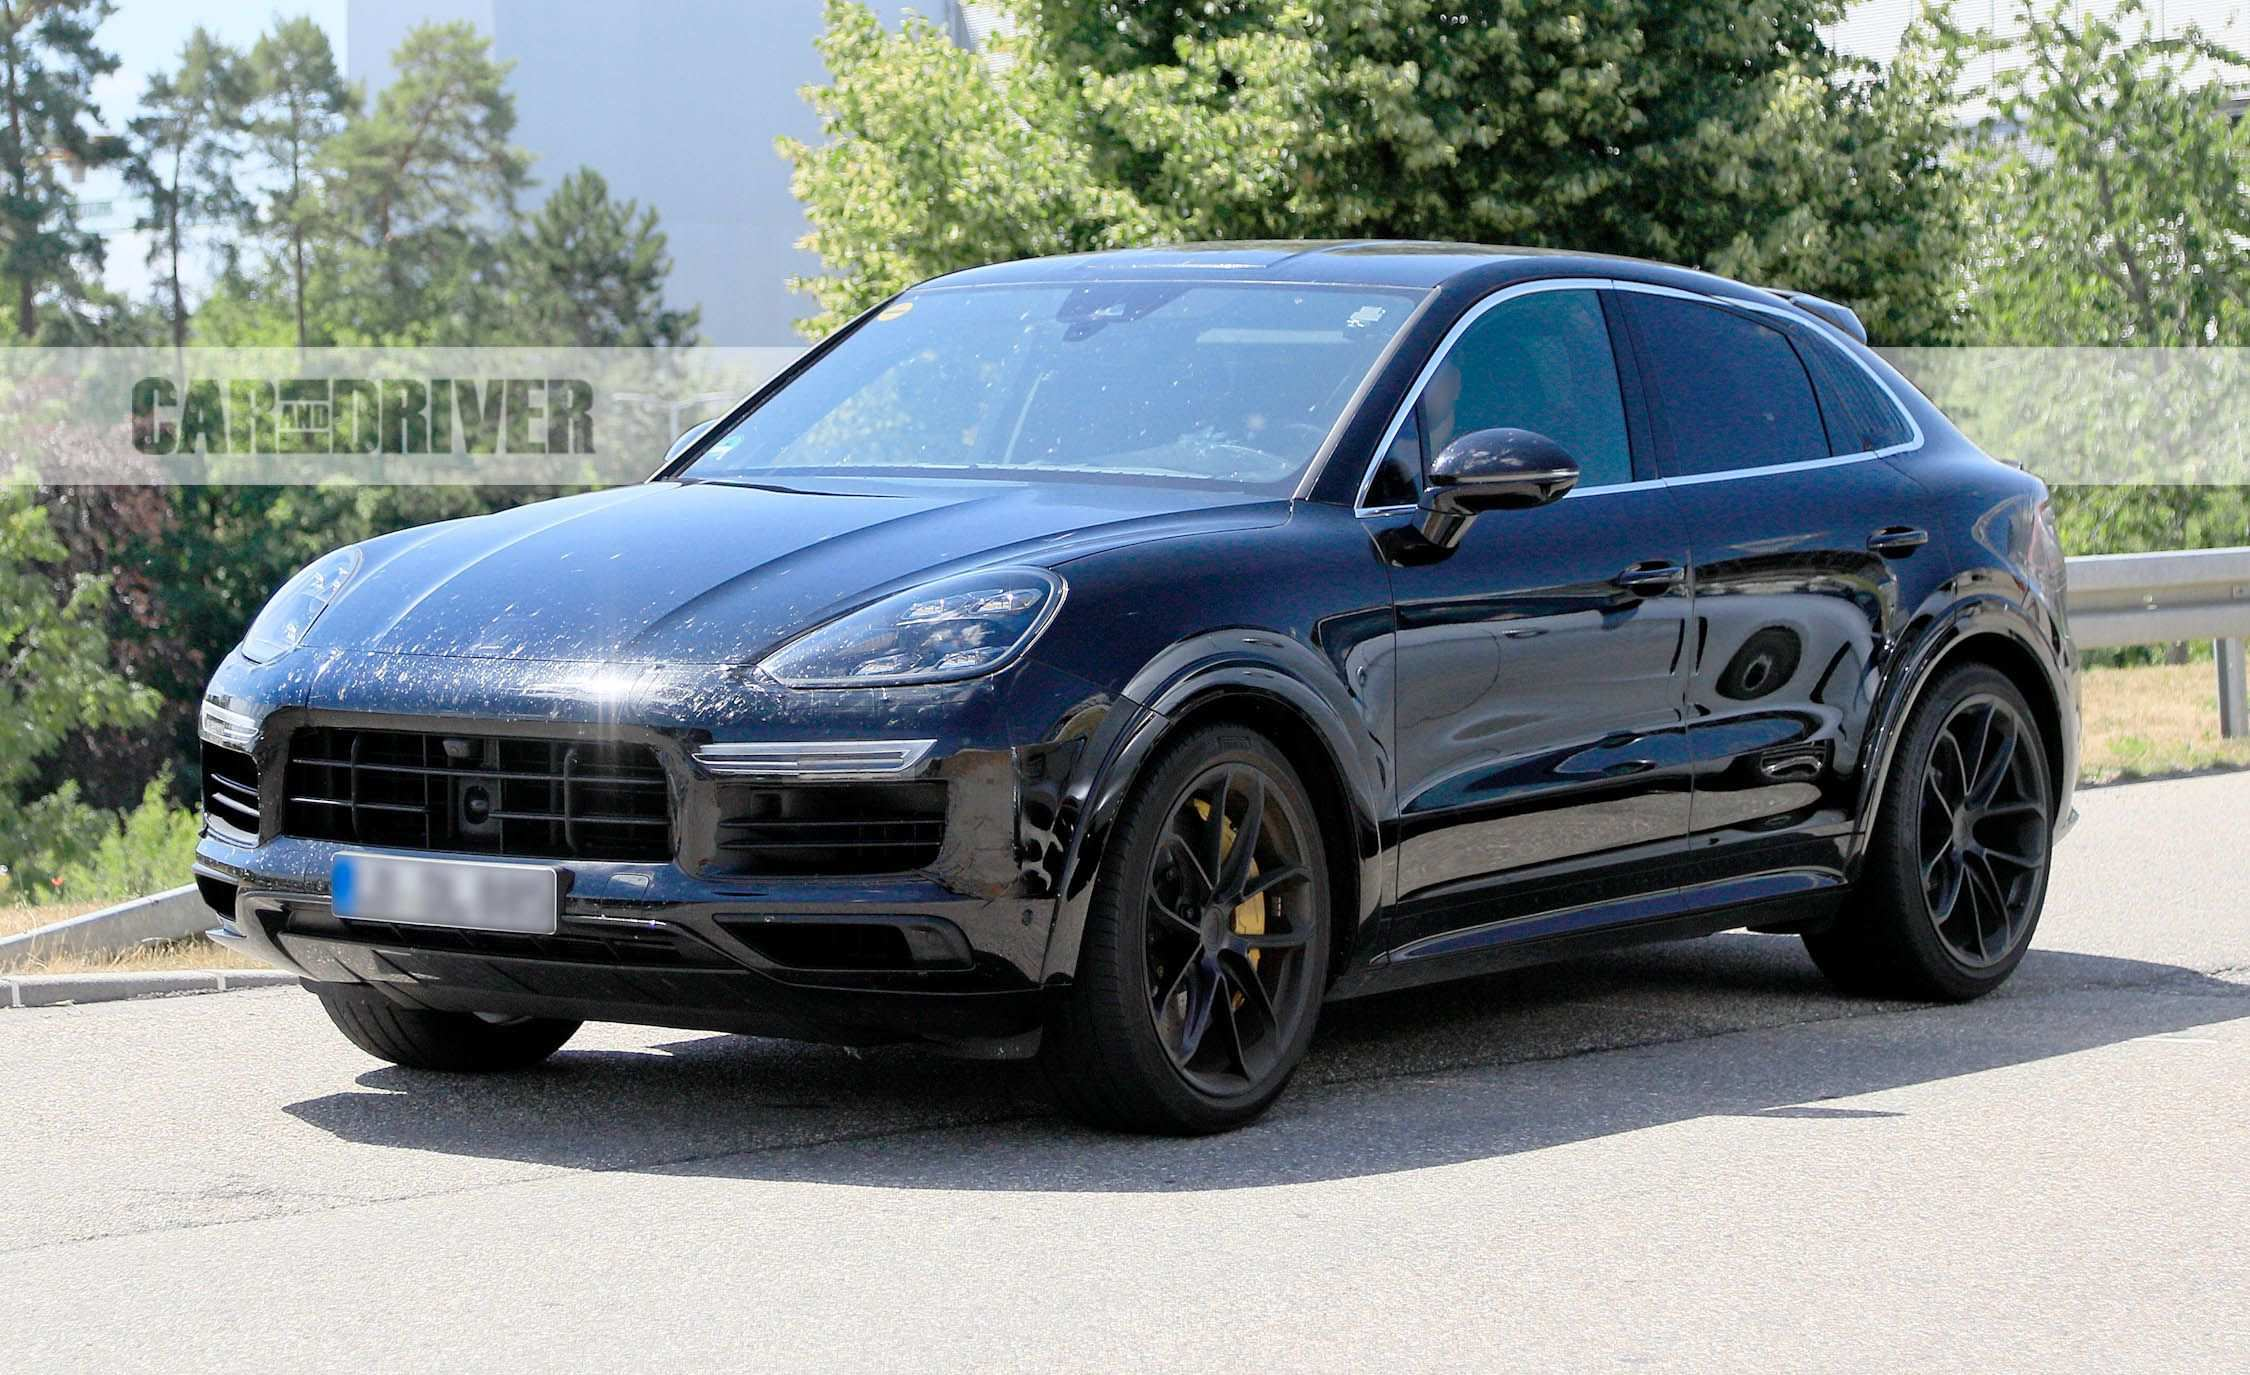 82 Gallery of 2020 Porsche Cayenne Prices for 2020 Porsche Cayenne